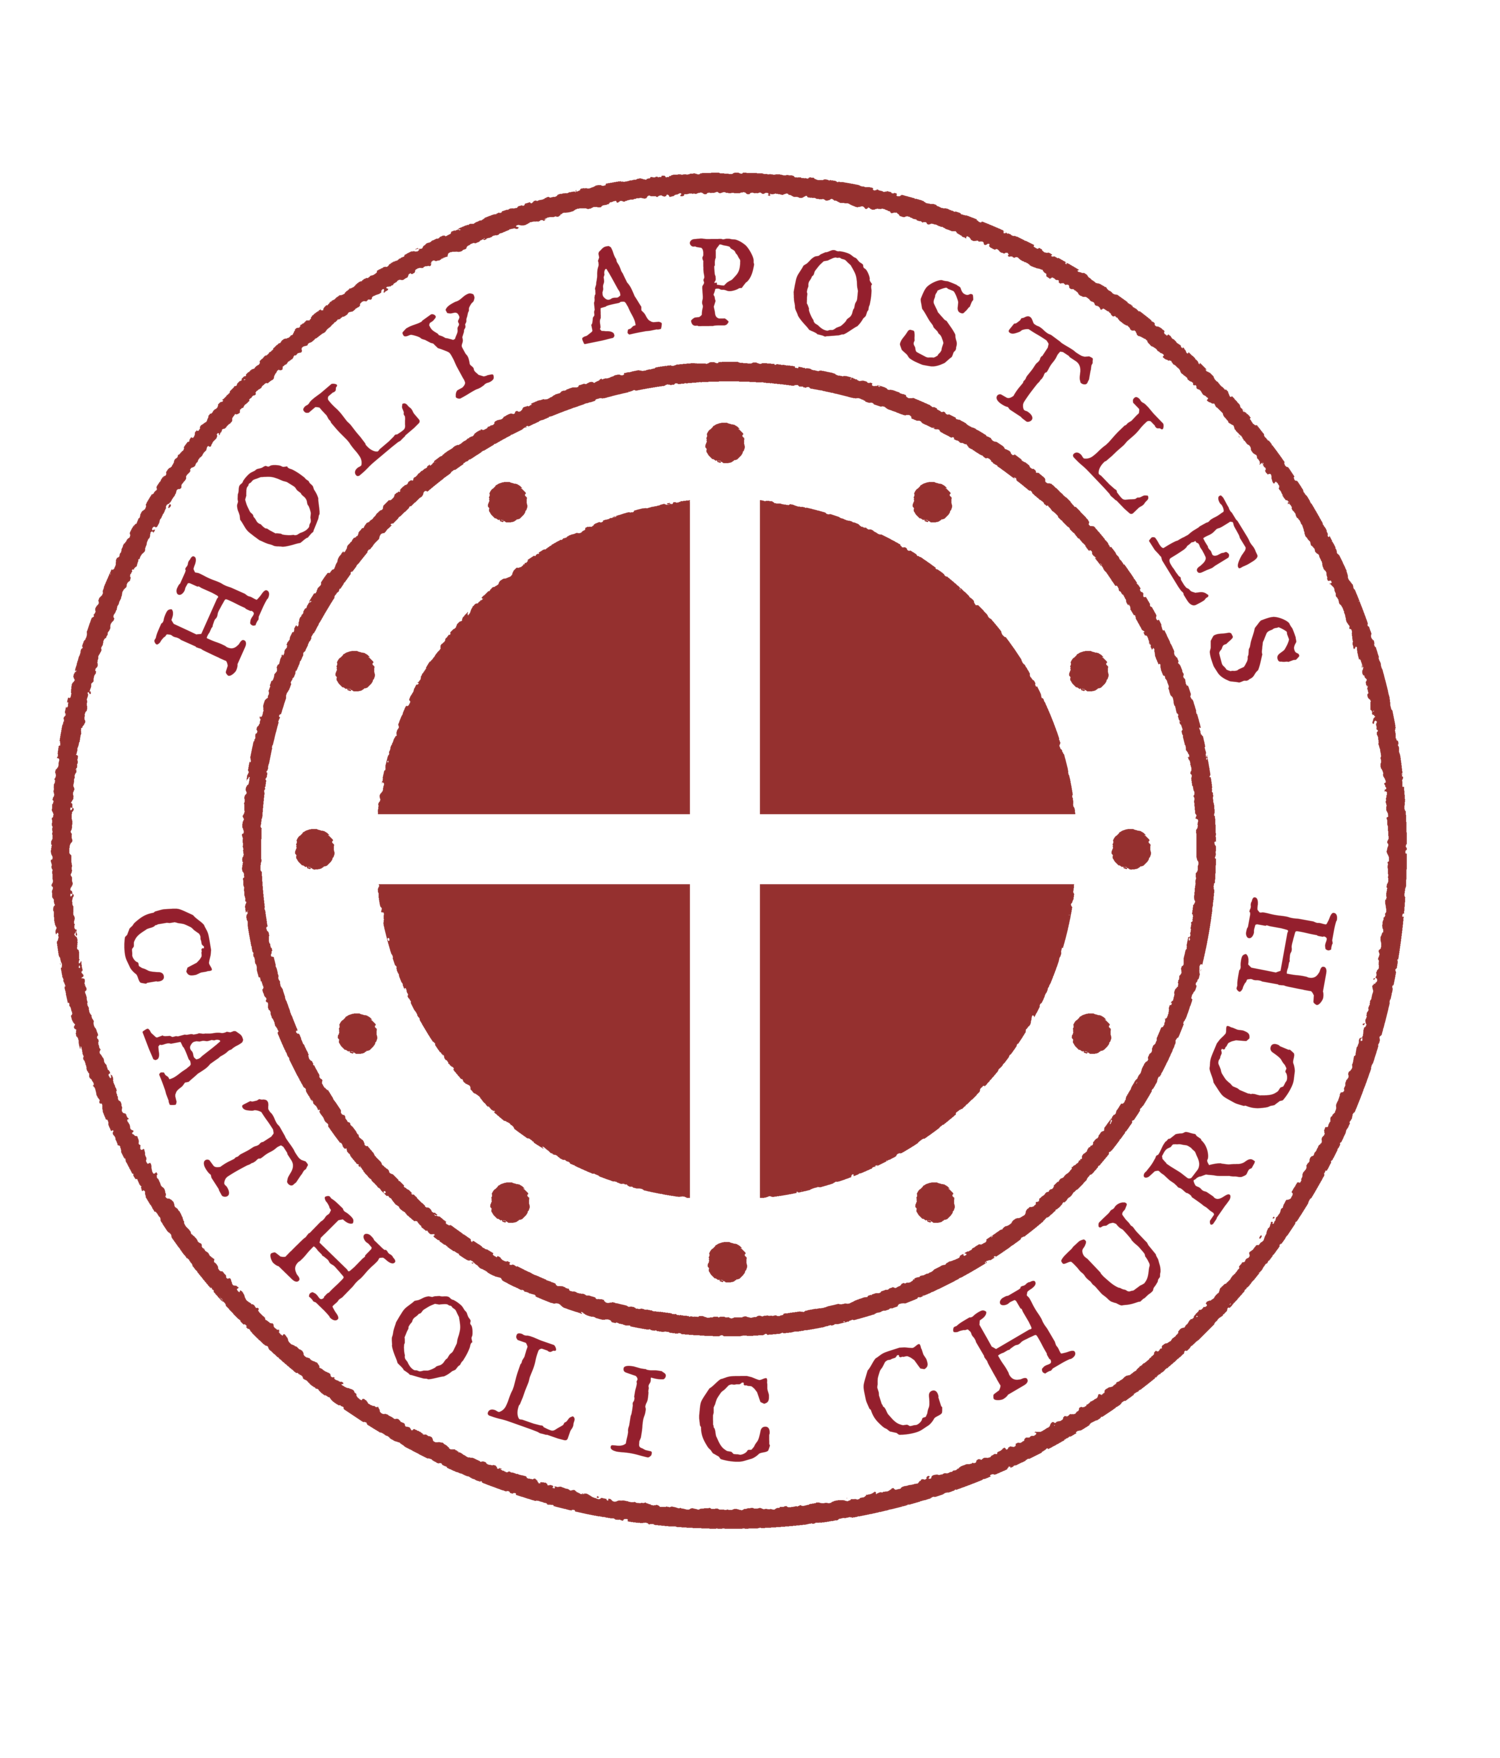 Holy Apostles Catholic Church & Preschool